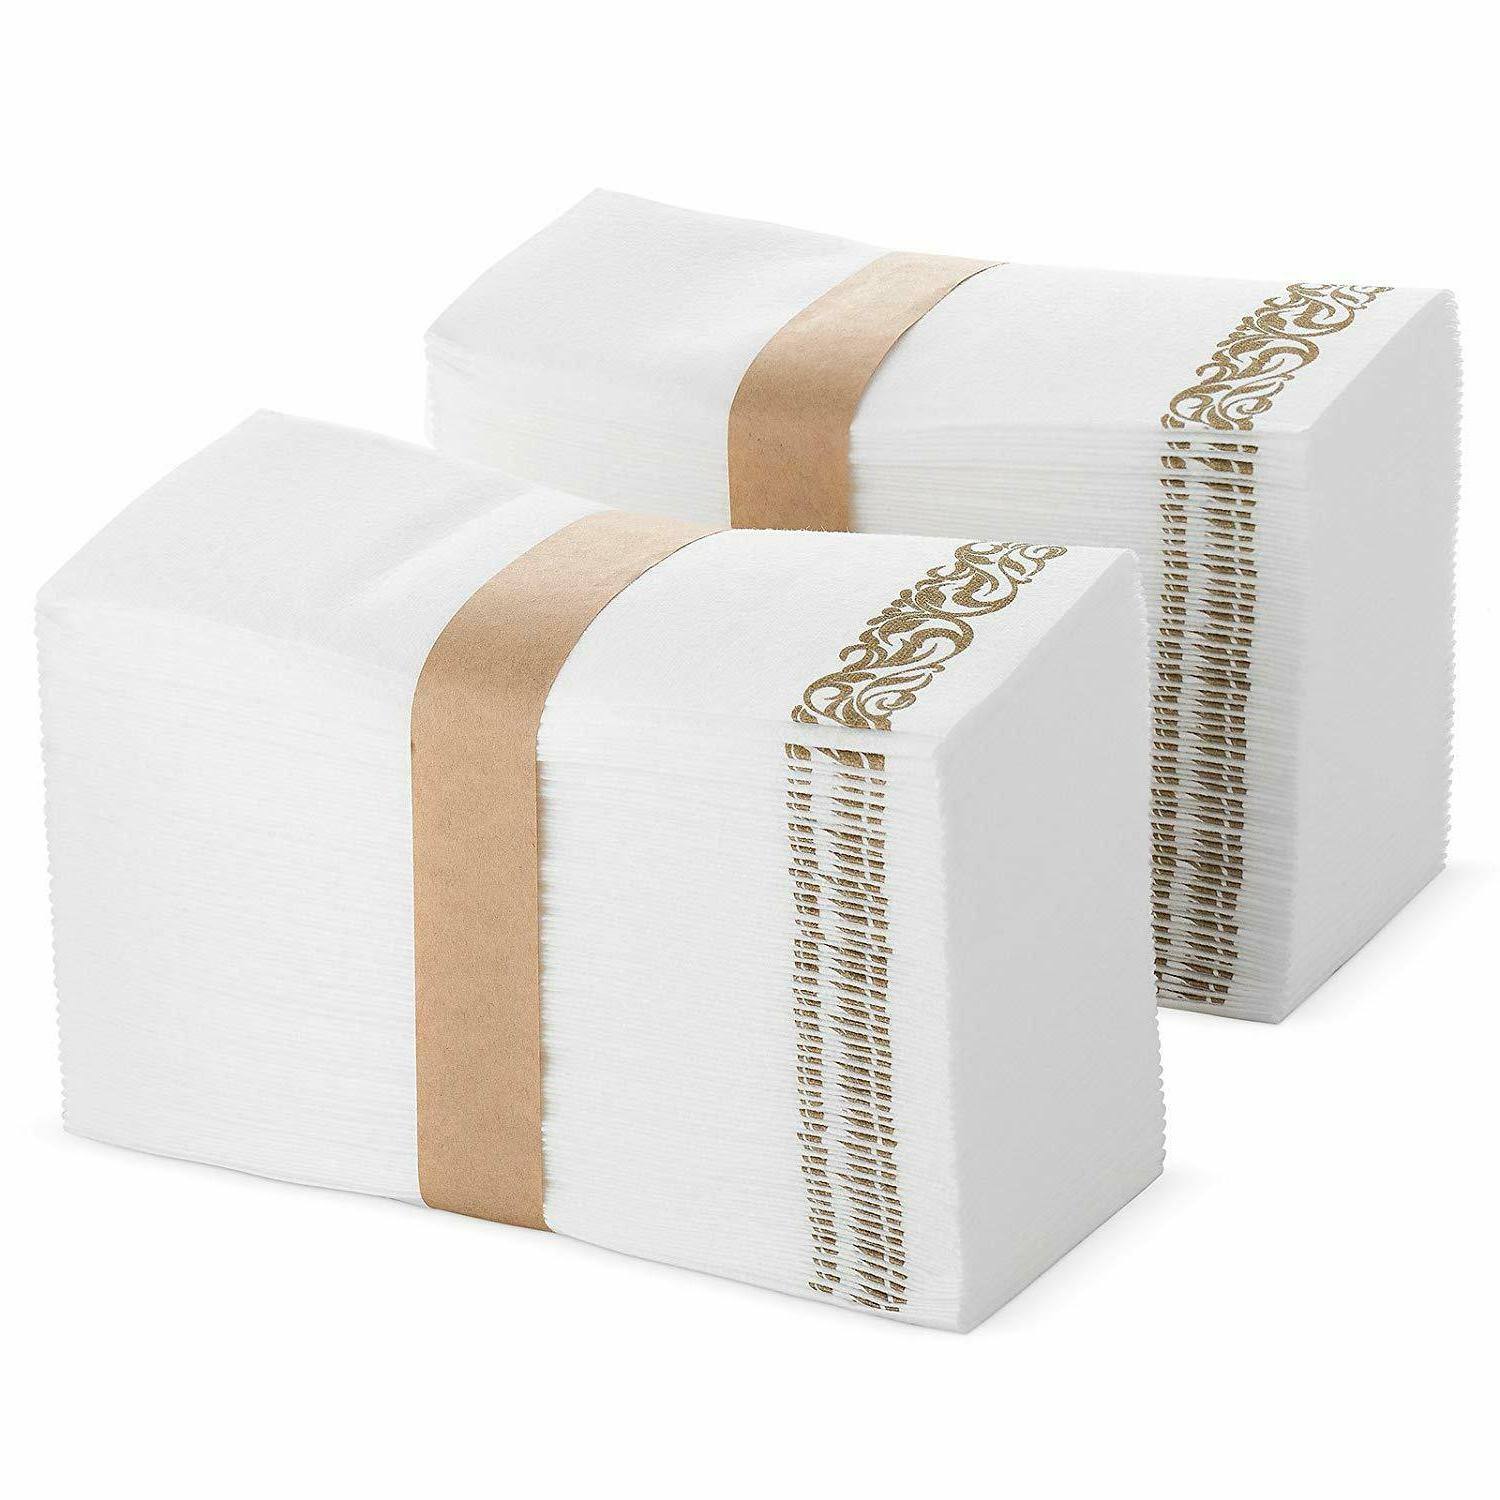 Disposable Napkins Hand Towels | Hand-towels.org